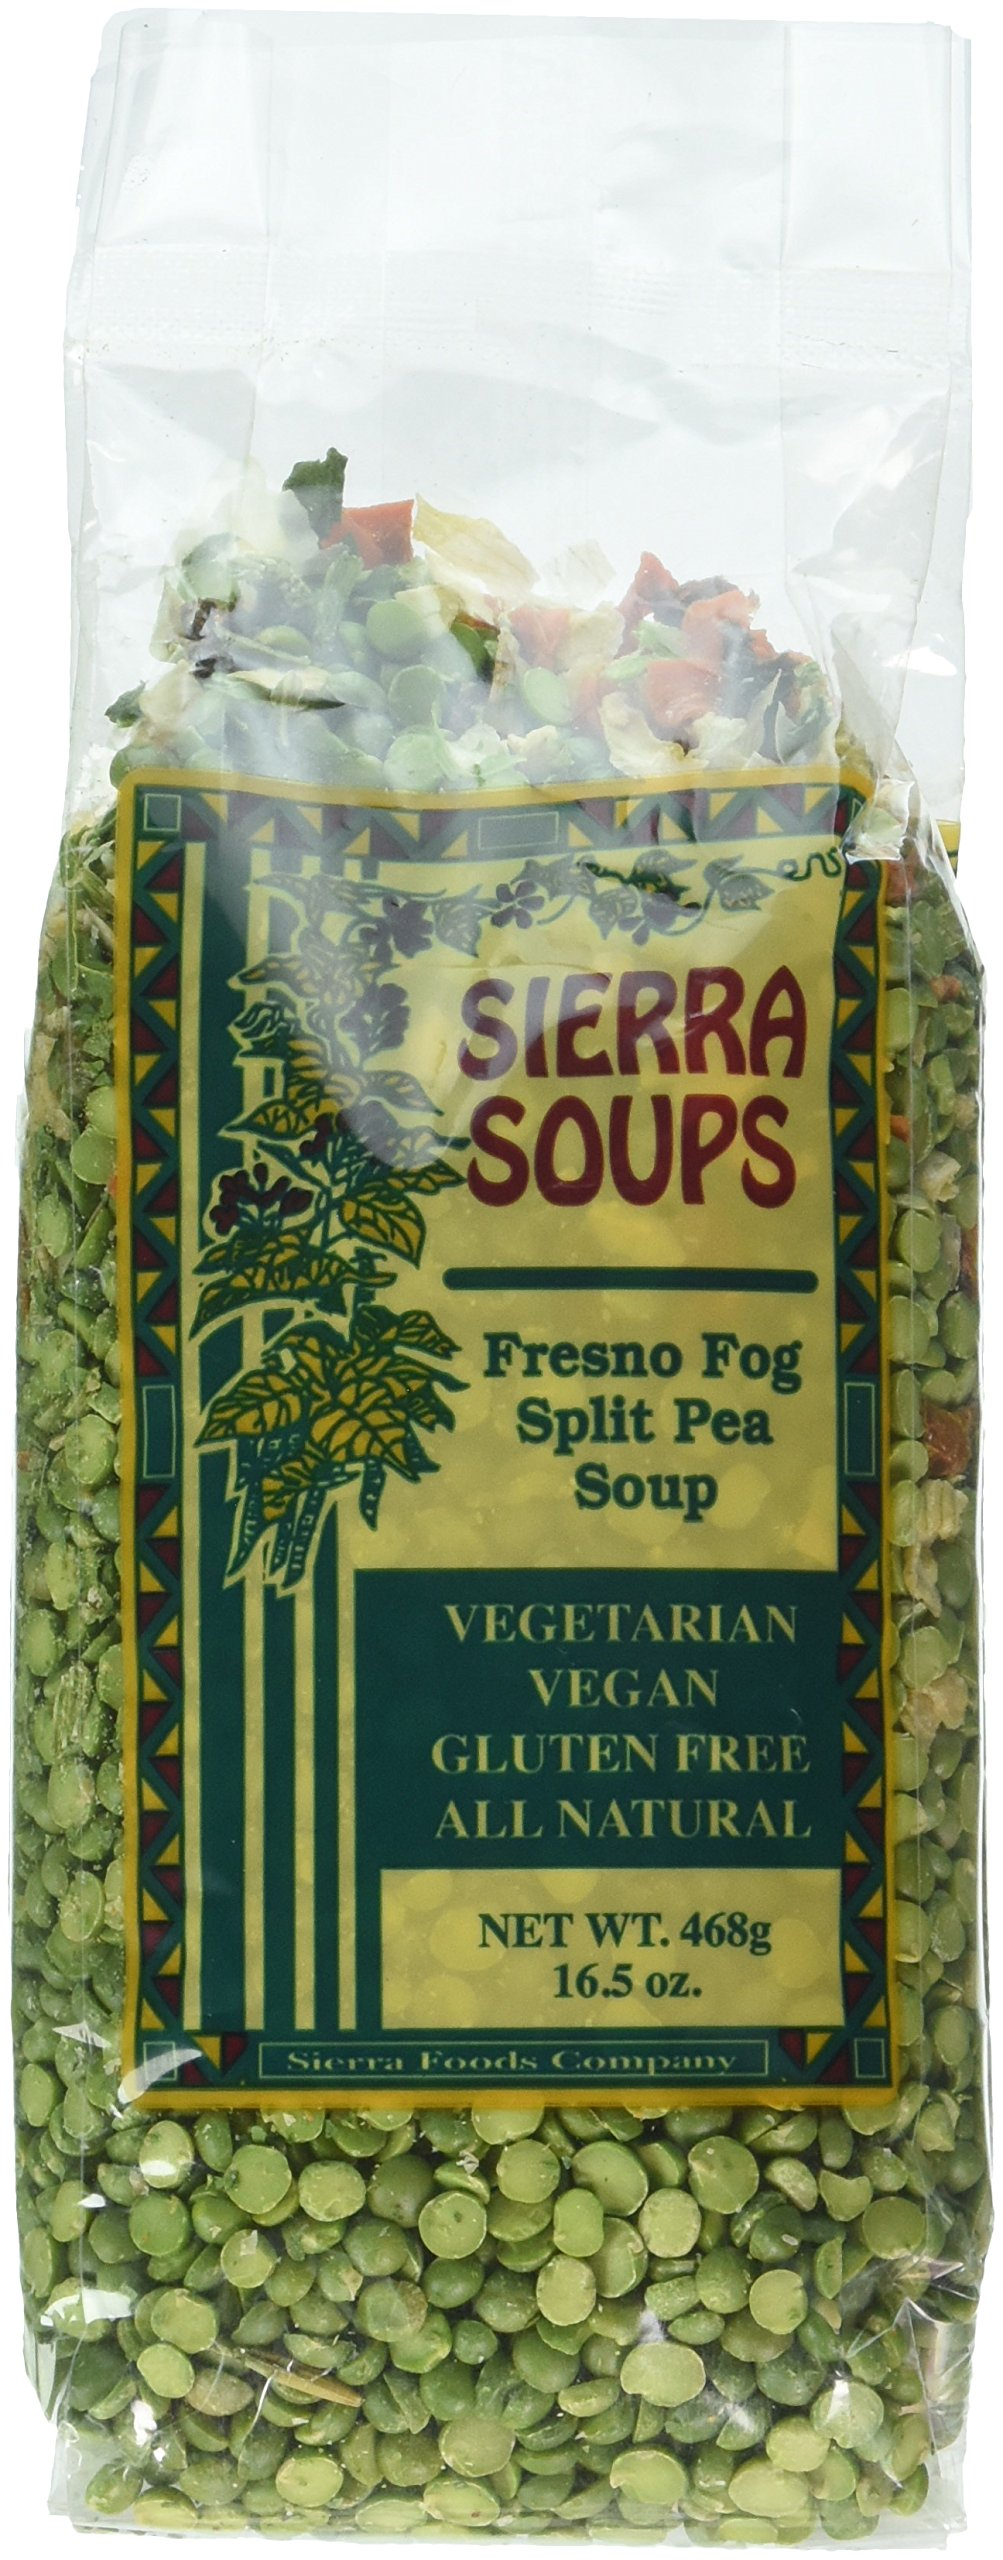 All Natural Gluten Free Vegetarian Vegan Fresno Fog Split Pea Soup Mix Pack of 2 468 g 16.5 oz each